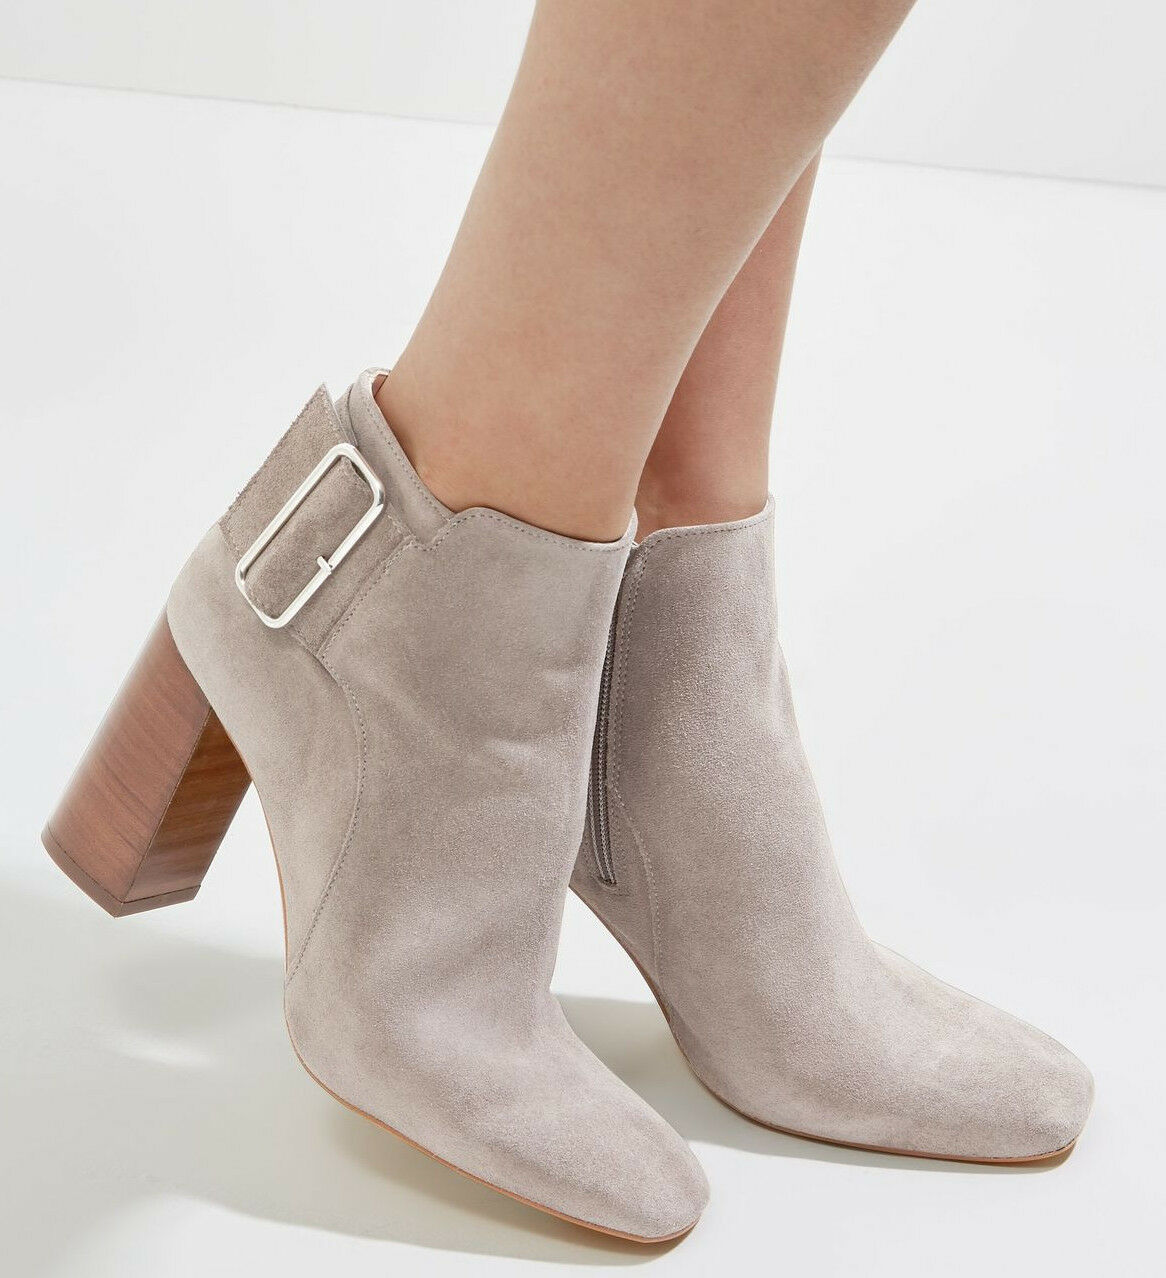 65 WOMENS PLUS SIZE 6 7 9 NEW LOOK GREY REAL LEATHER TRANSVESTITE ANKLE BOOTS